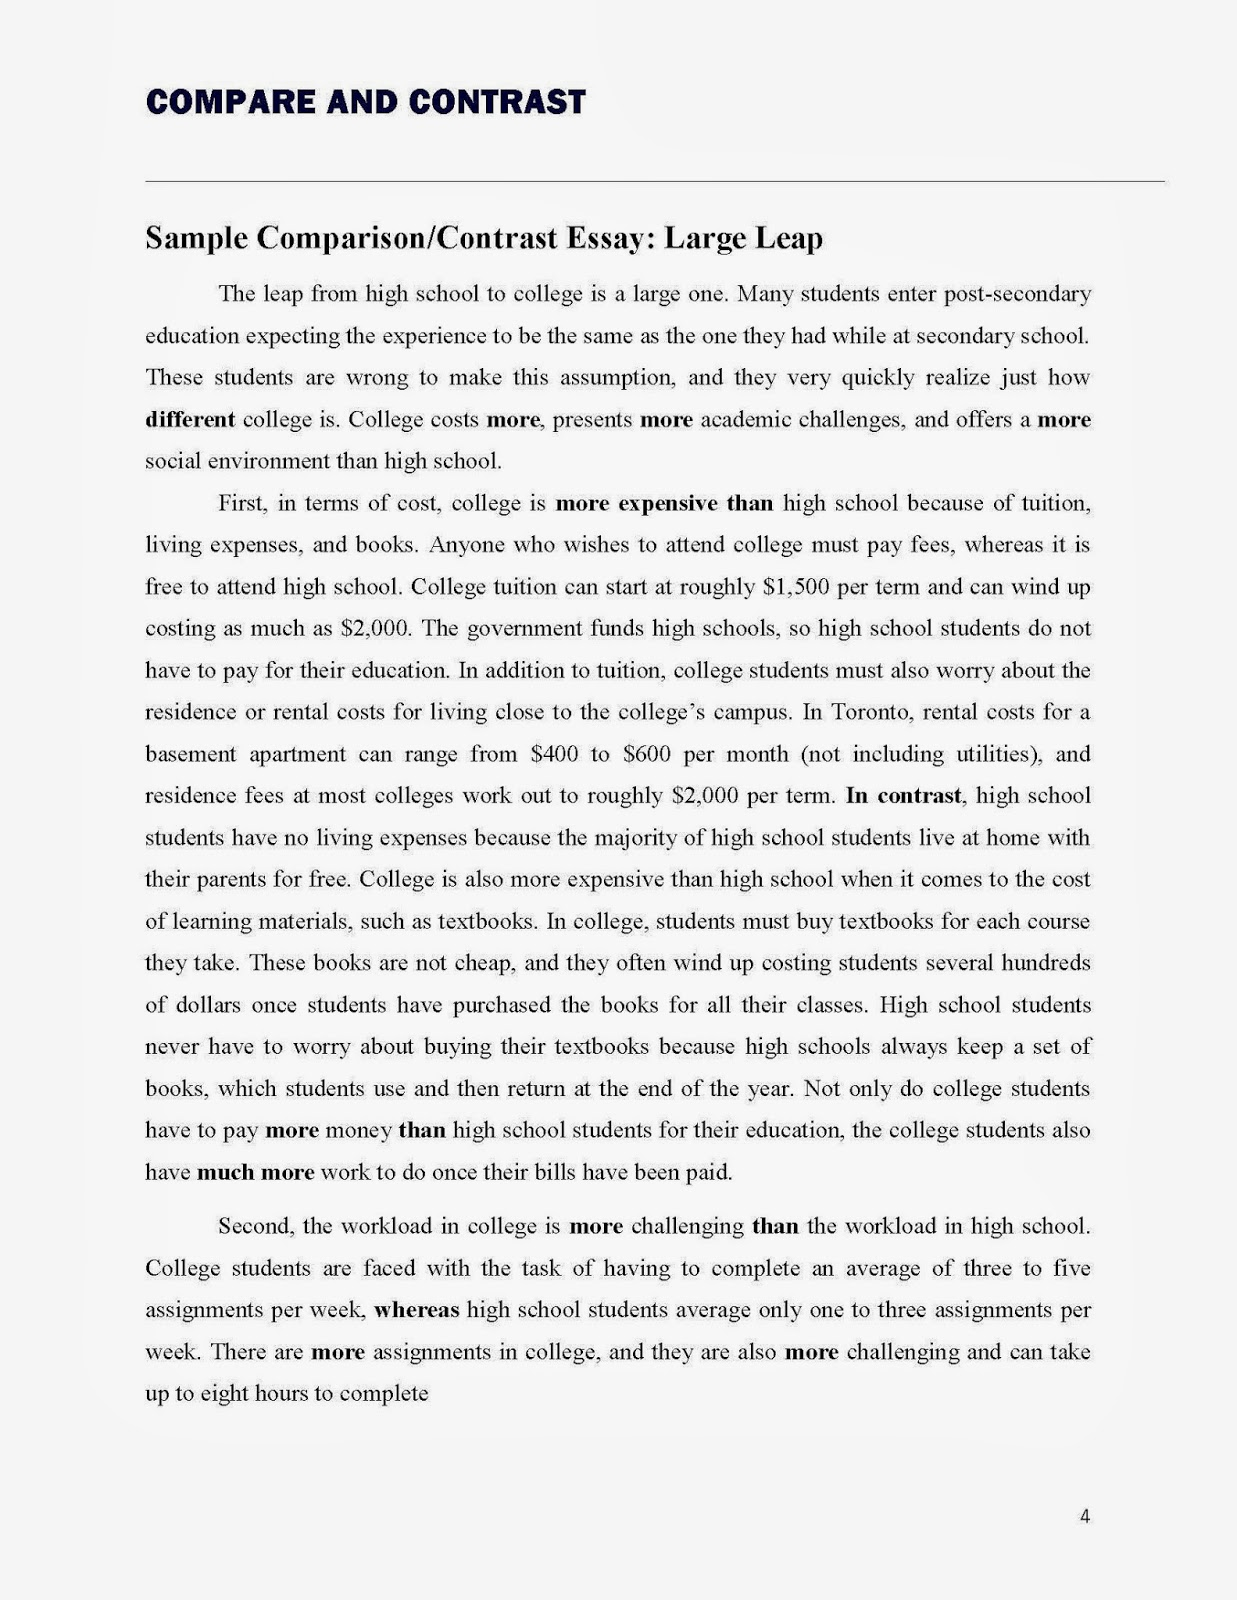 Physician cover letter topic for compare and contrast essay cover writing a compare contrast essay writing a comparison essay writing altavistaventures Images